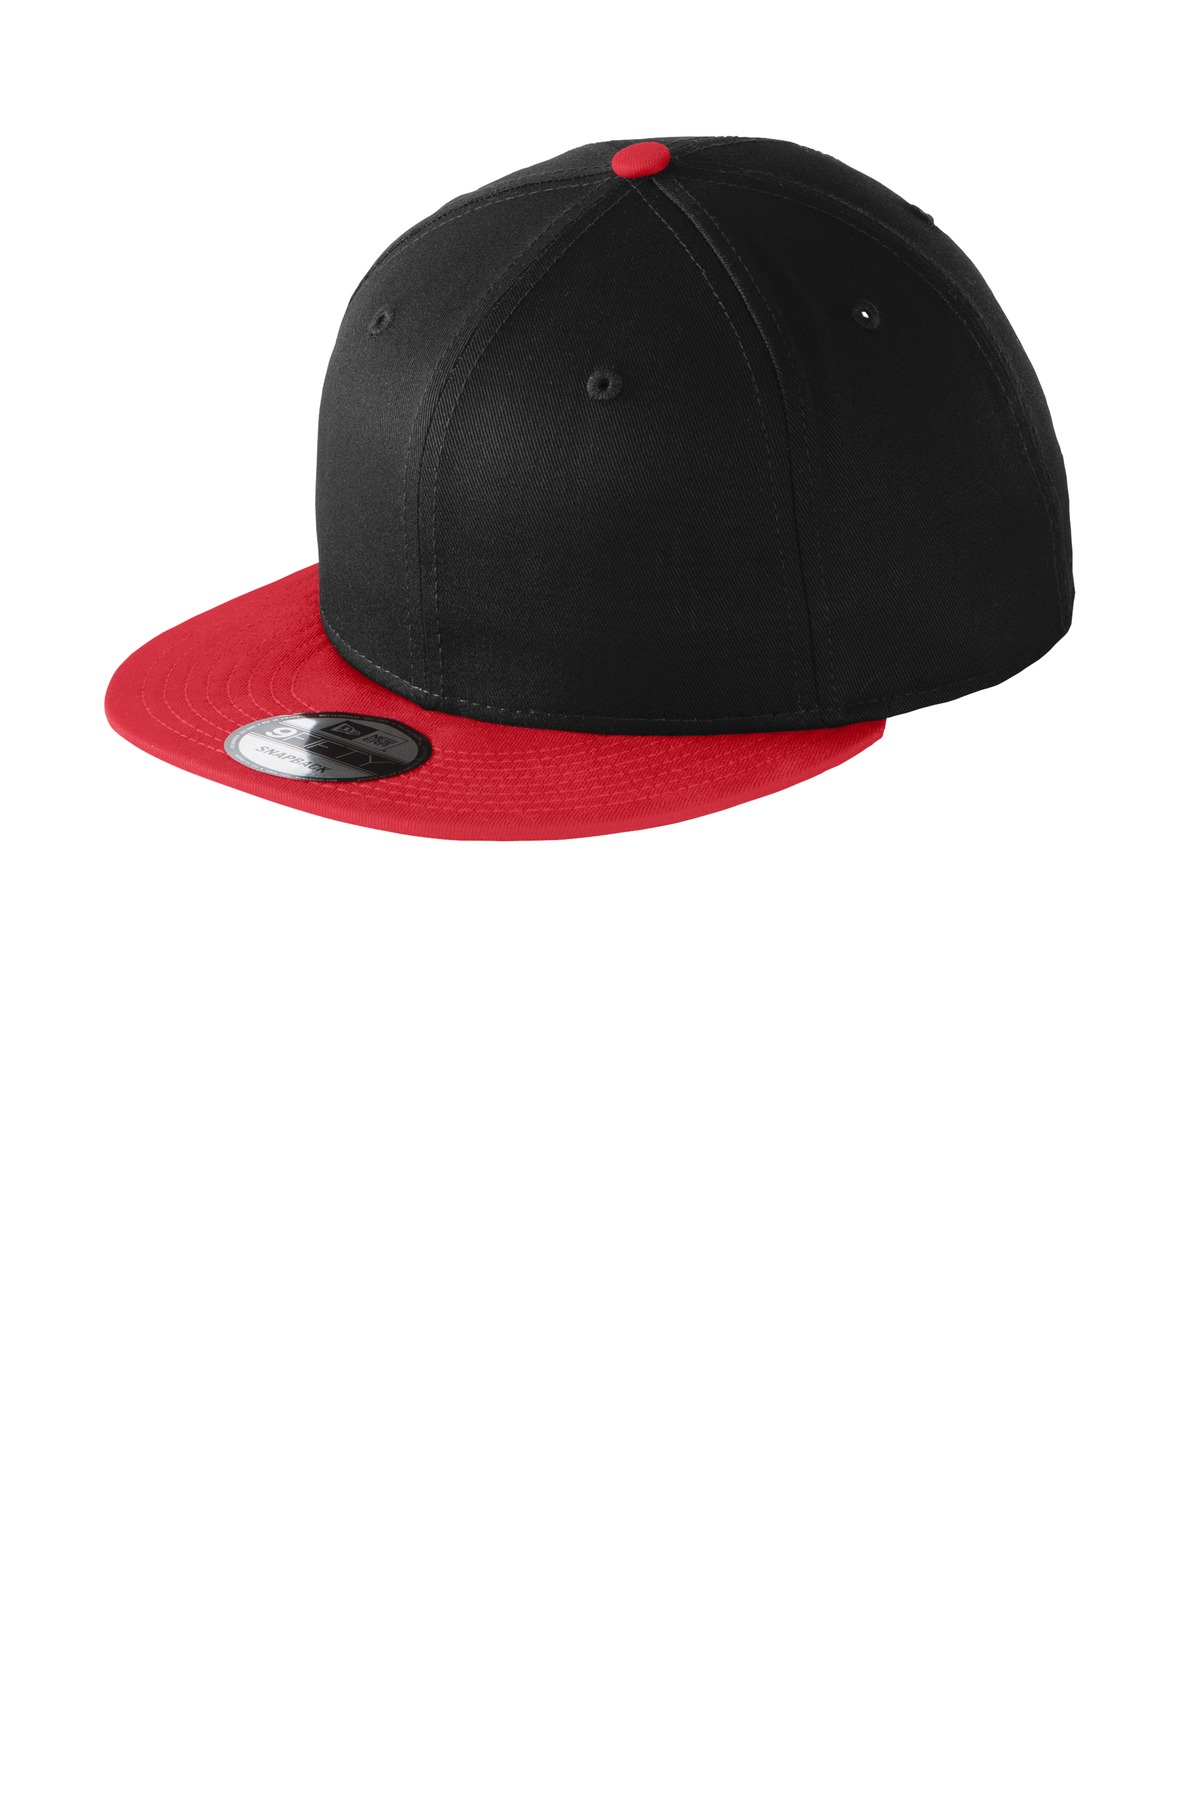 New Era ®  - Flat Bill Snapback Cap. NE400 - Black/ Scarlet